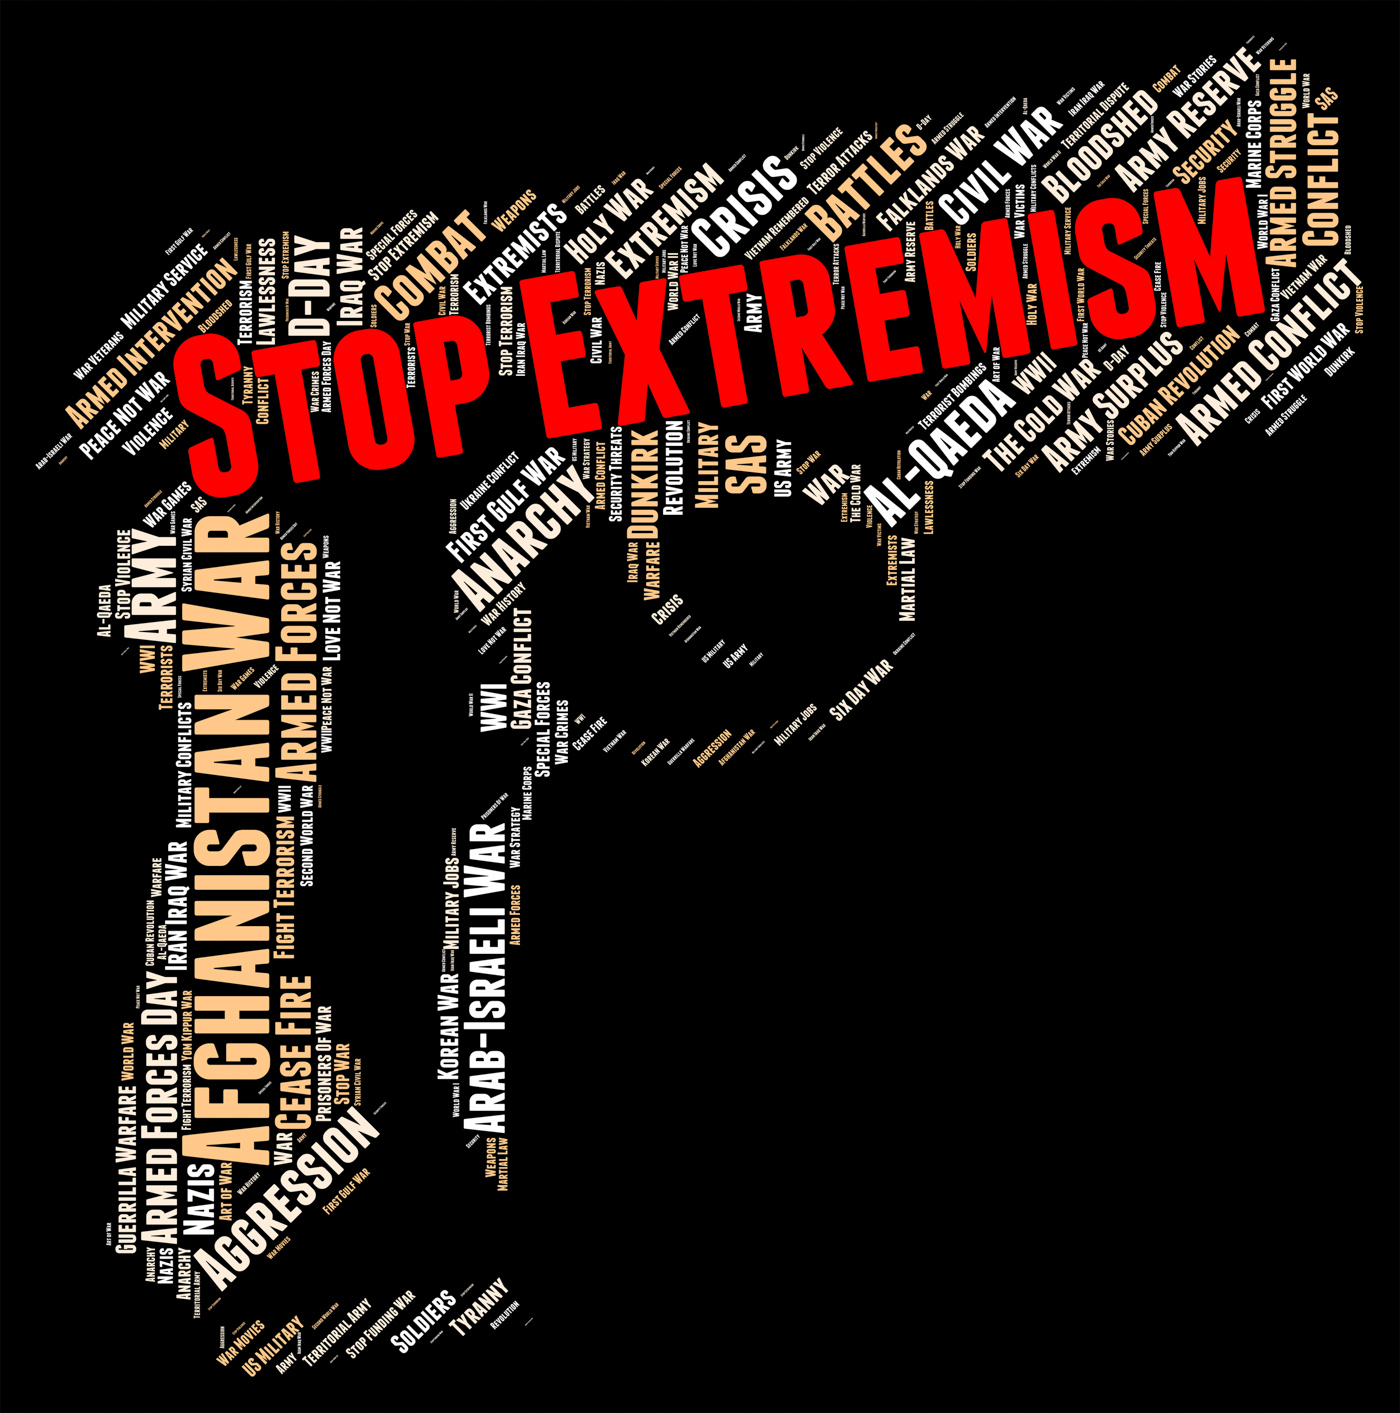 Stop Extremism Indicates Warning Sign And Activism, Text, Sectarianism, Stop, Stopped, HQ Photo